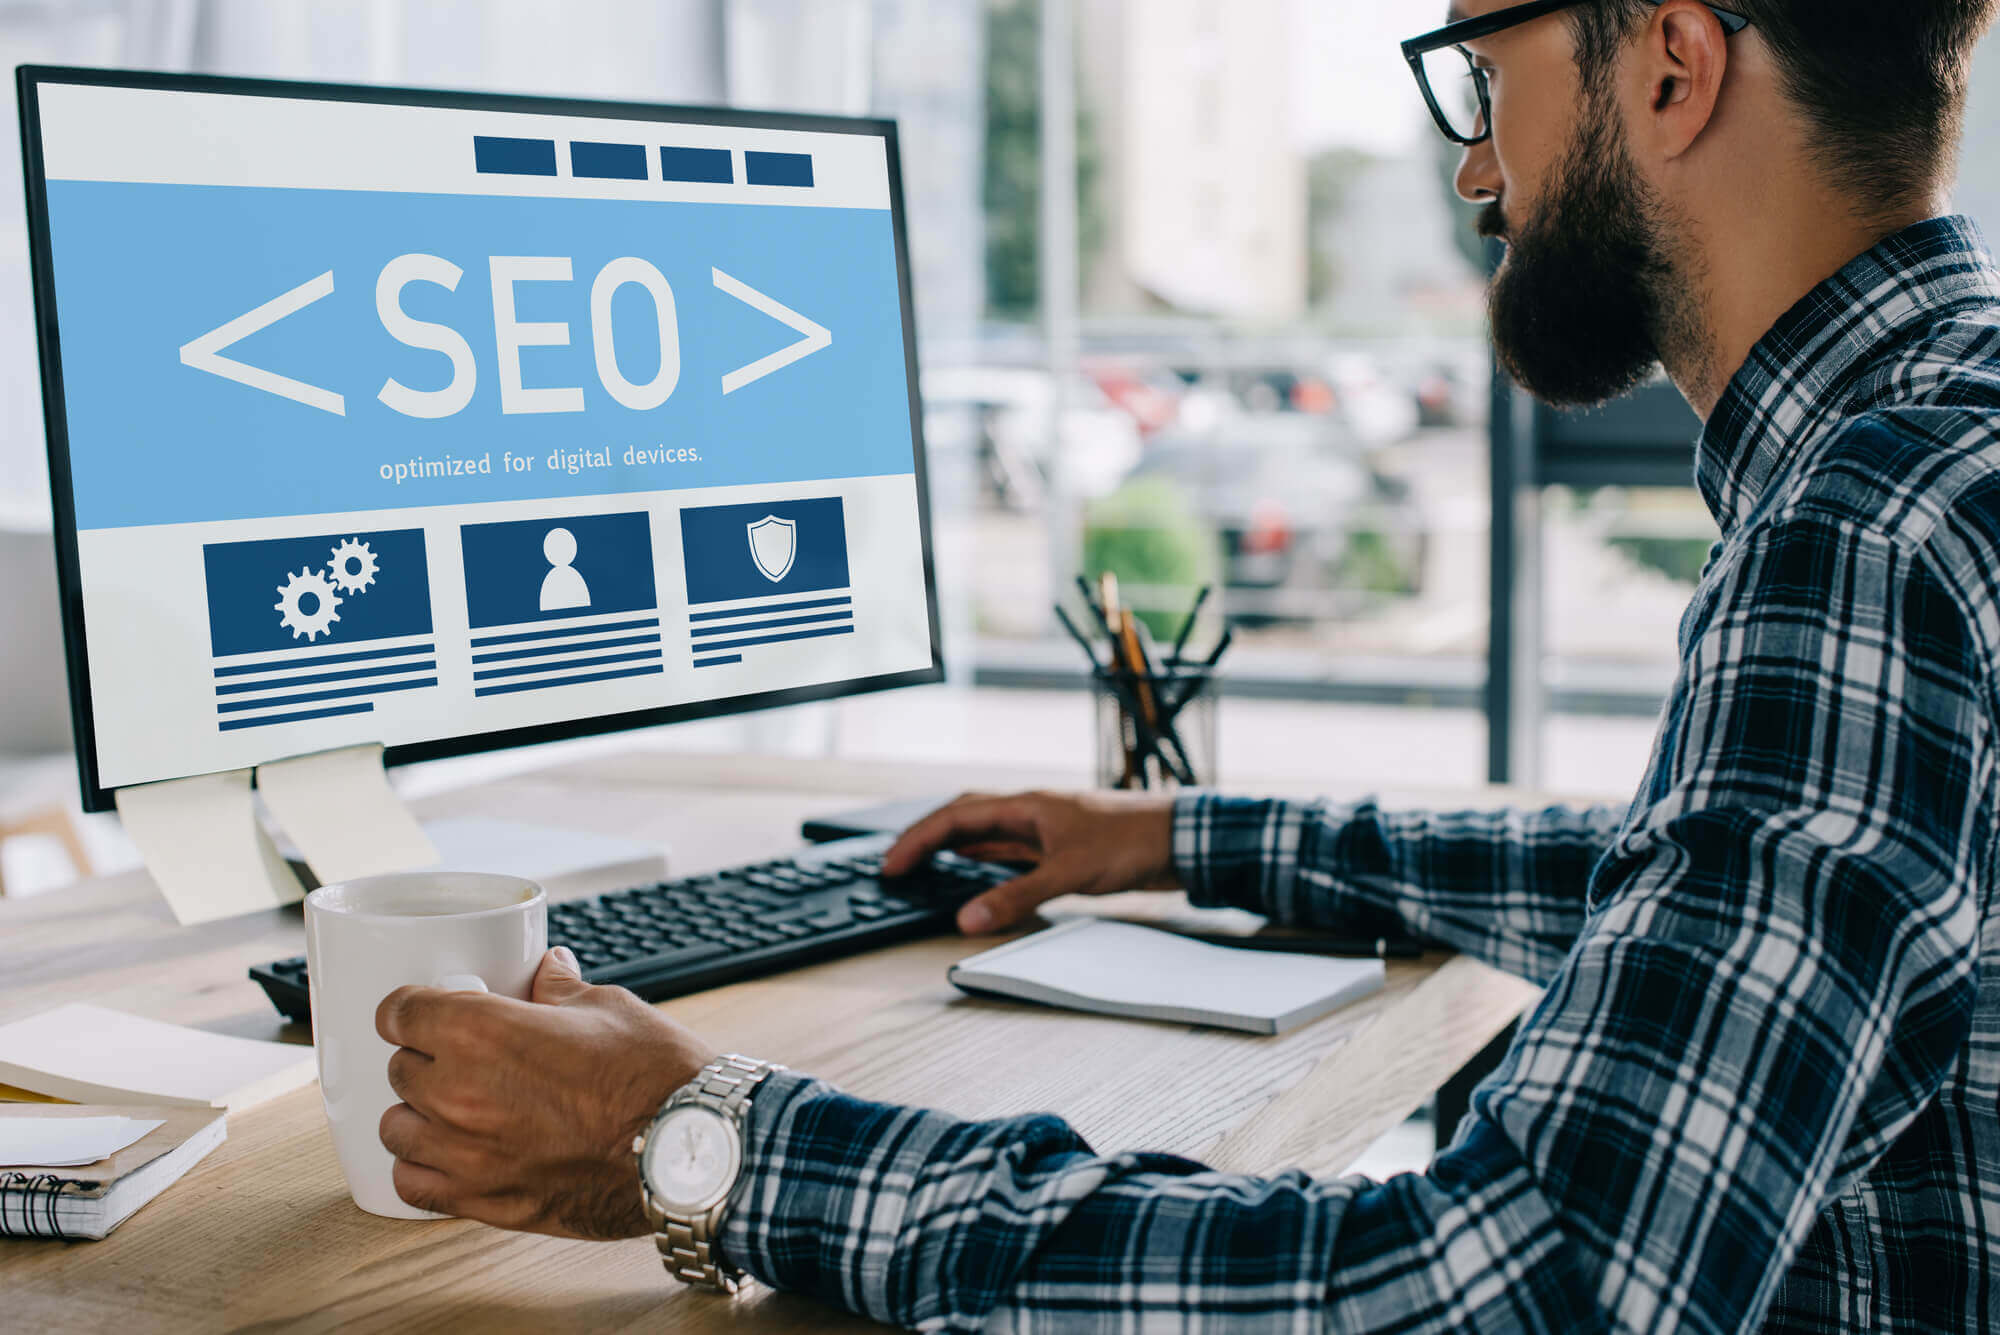 Who is the best Fort Lauderdale SEO company?